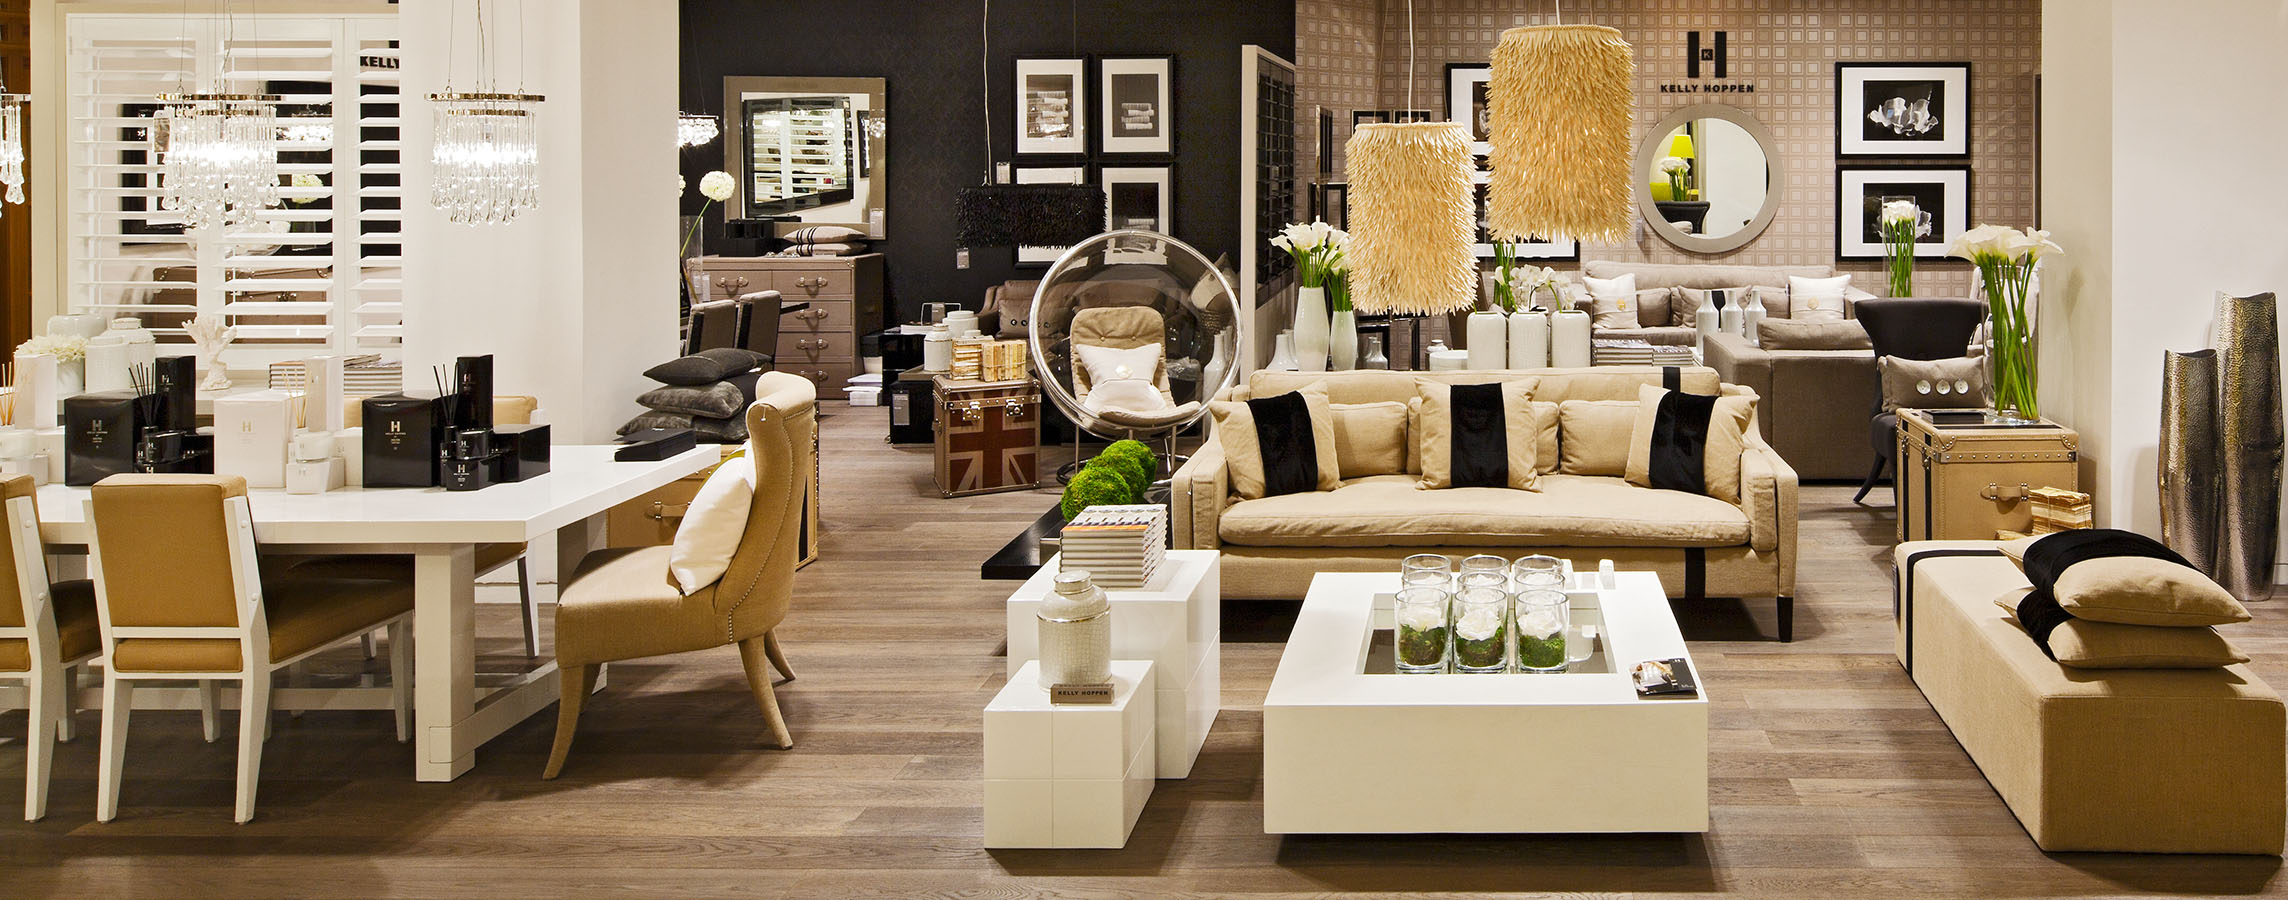 Retail store for British Interior Design superstar Kelly Hoppen.Client: Kelly Hoppen / Loft Living